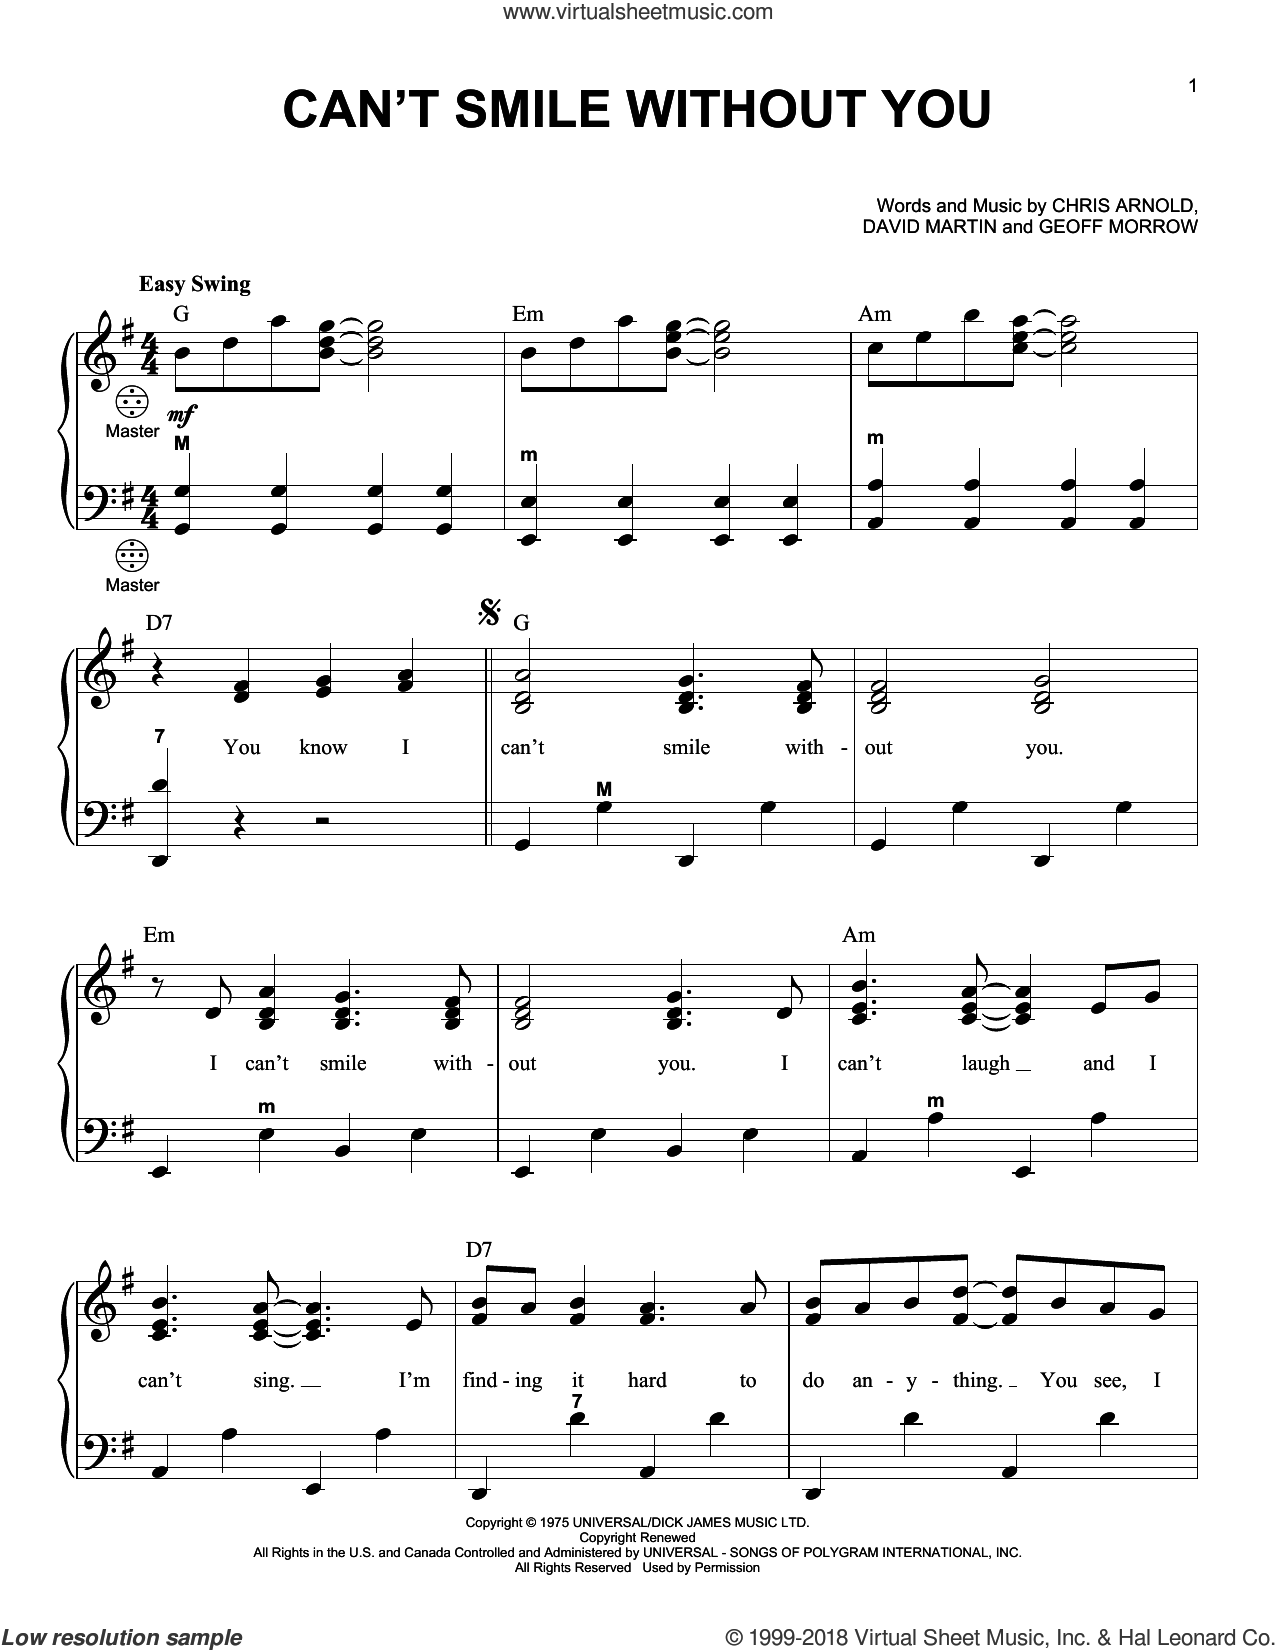 Can't Smile Without You sheet music for accordion by Barry Manilow, Chris Arnold, David Martin and Geoff Morrow, intermediate skill level